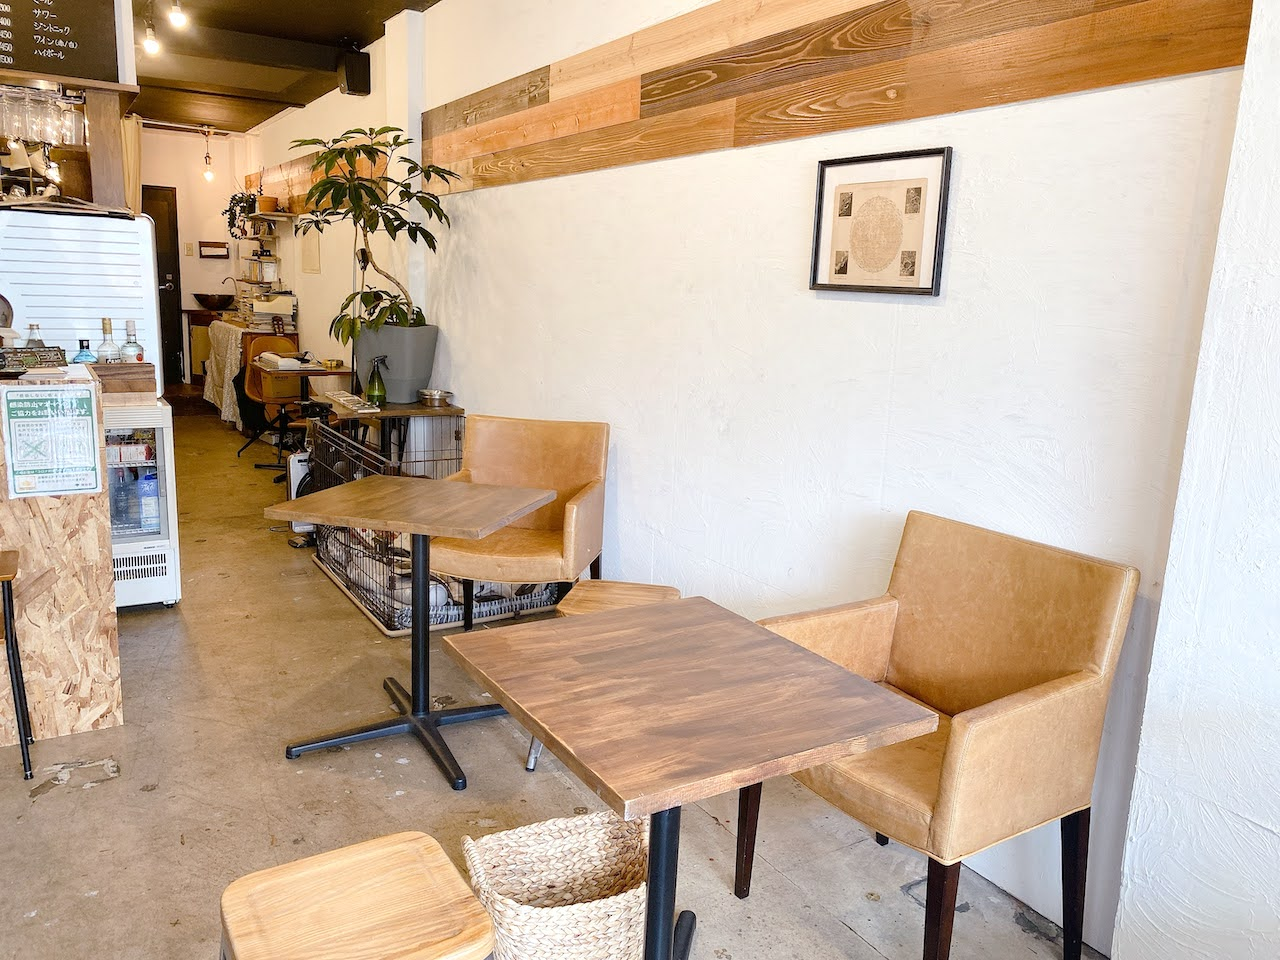 cafe4rest 店内